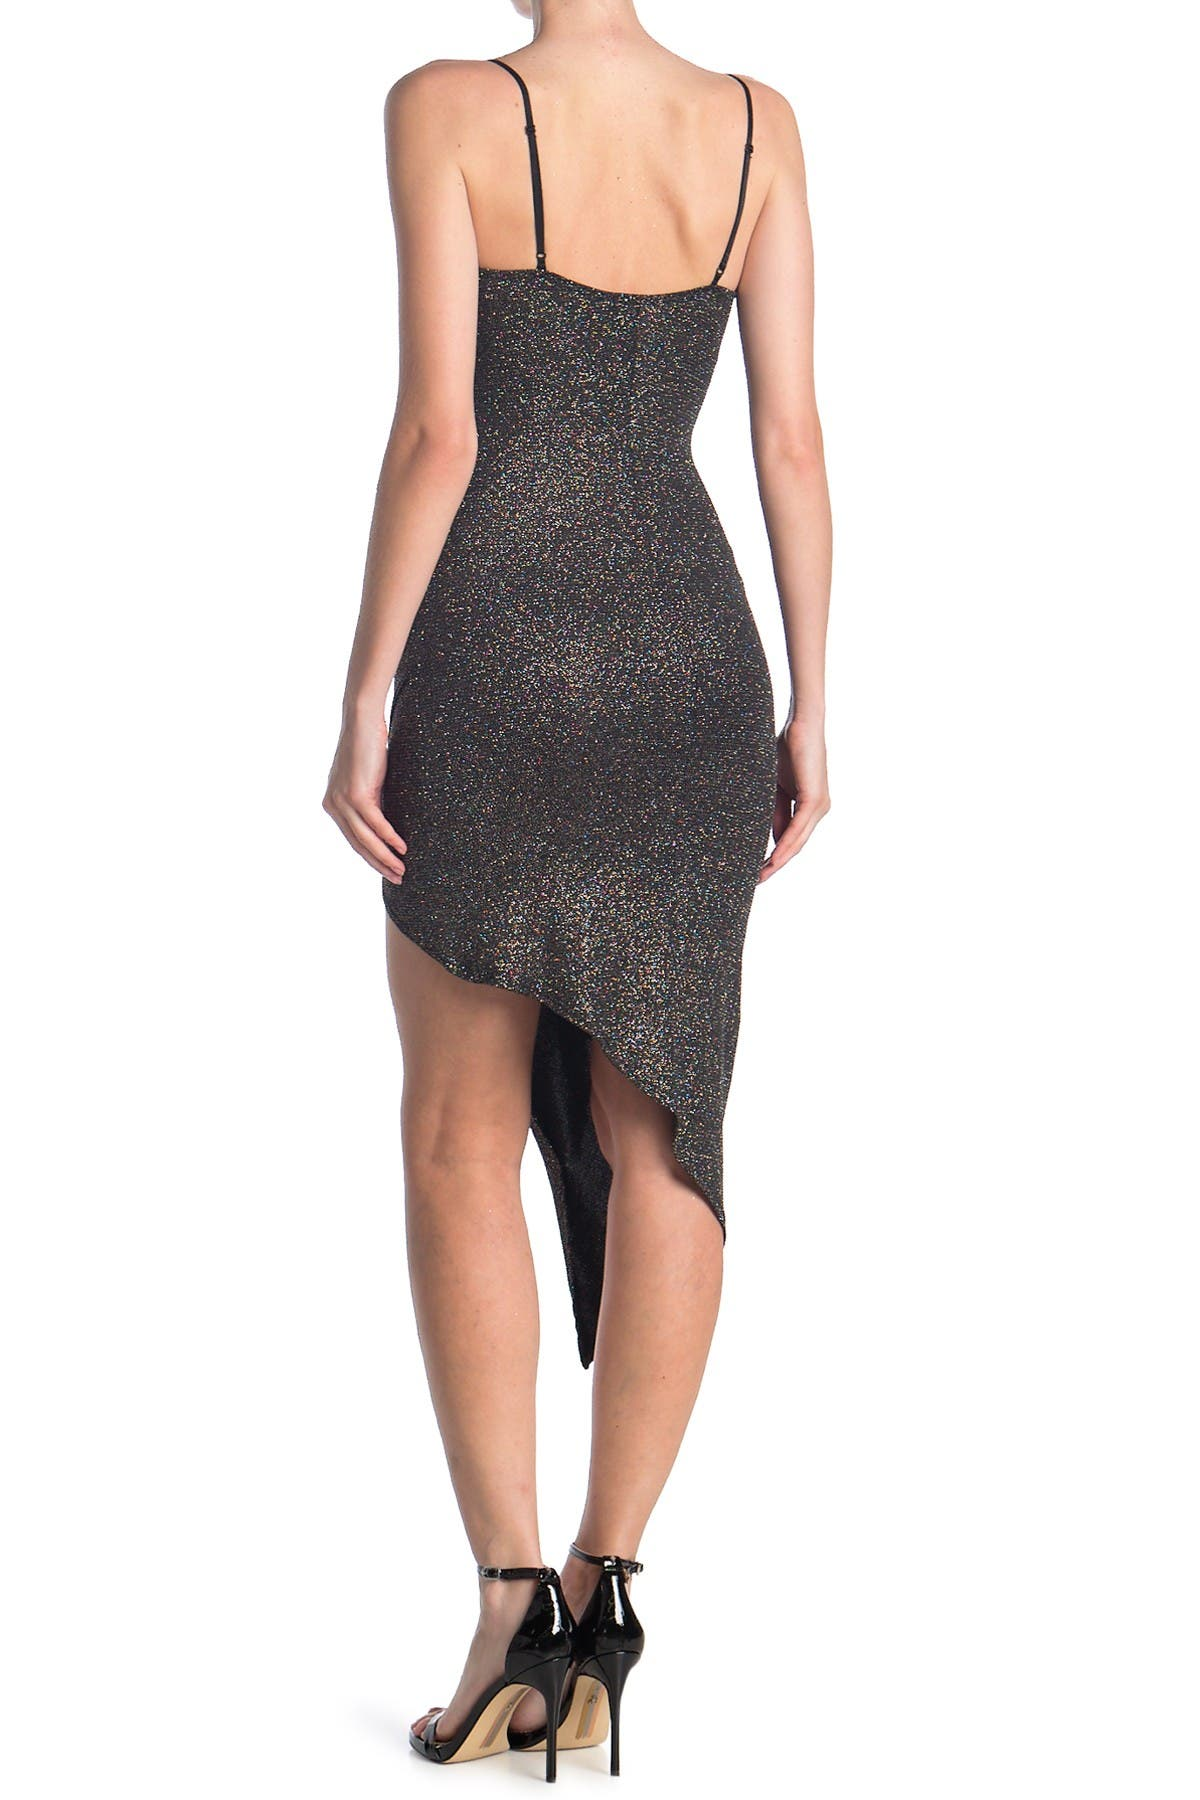 Love, Nickie Lew Shimmer Ruched High/Low Bodycon Dress